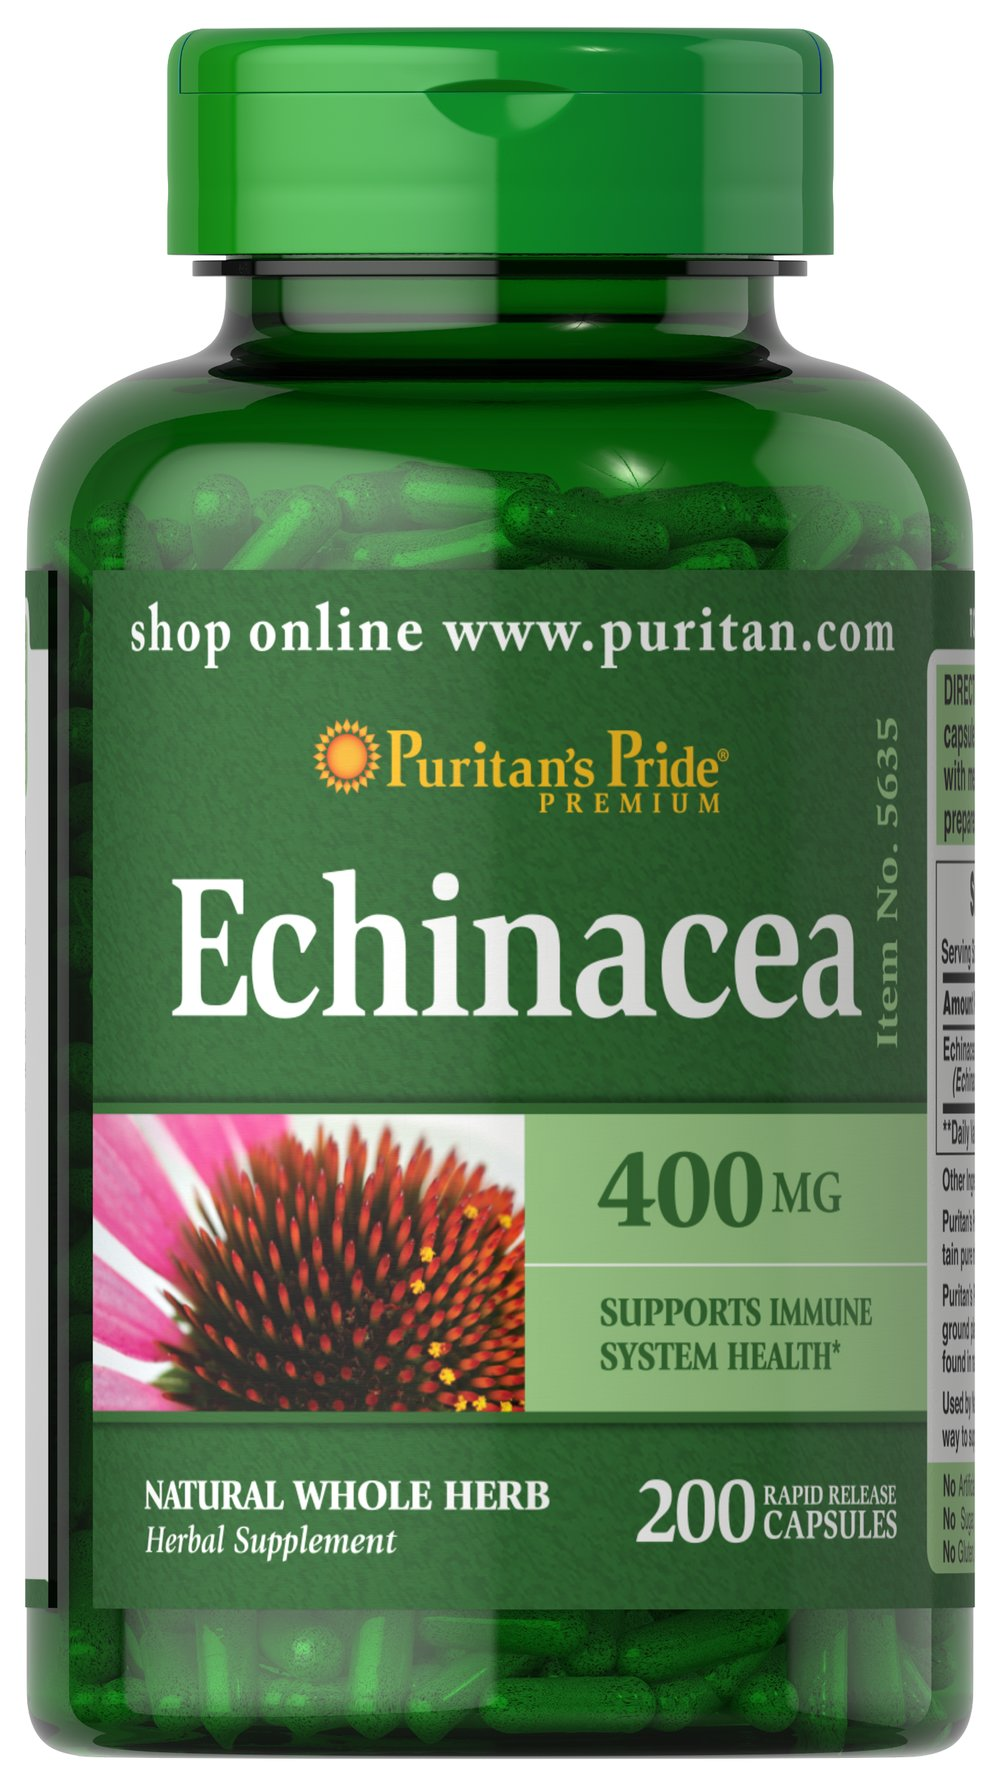 Echinacea 400 mg Used by Native Americans, Echinacea is a centuries-old way to support immune system health.** As an herbal supplement, Echinacea is especially popular during times of seasonal change.</p><p>This product comes in capsule form, but Echinacea is also available as a liquid extract, in combination with Goldenseal, as tablets in combination with Vitamin C and Rose Hips, or in a liquid formula specially designed for juniors.</p> 200 Capsules 400 mg $8.99